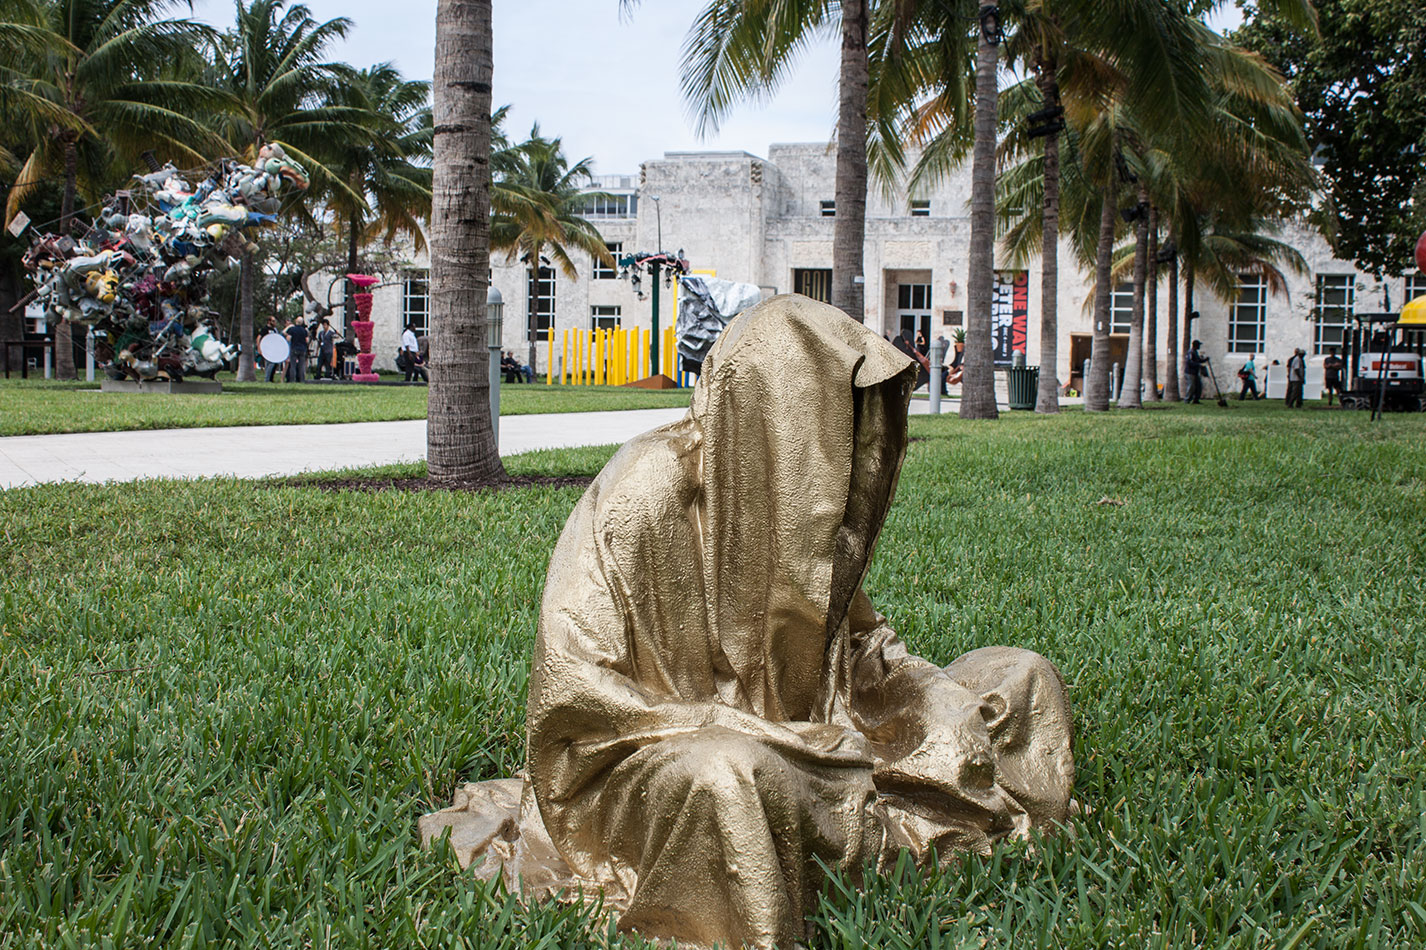 art-basel-miami-beach-fair-usa-florida-bass-museum-guardians-of-time-manfred-kili-kielnhofer-contemporary-fine-art-modern-arts-design-antiques-sculpture-6253